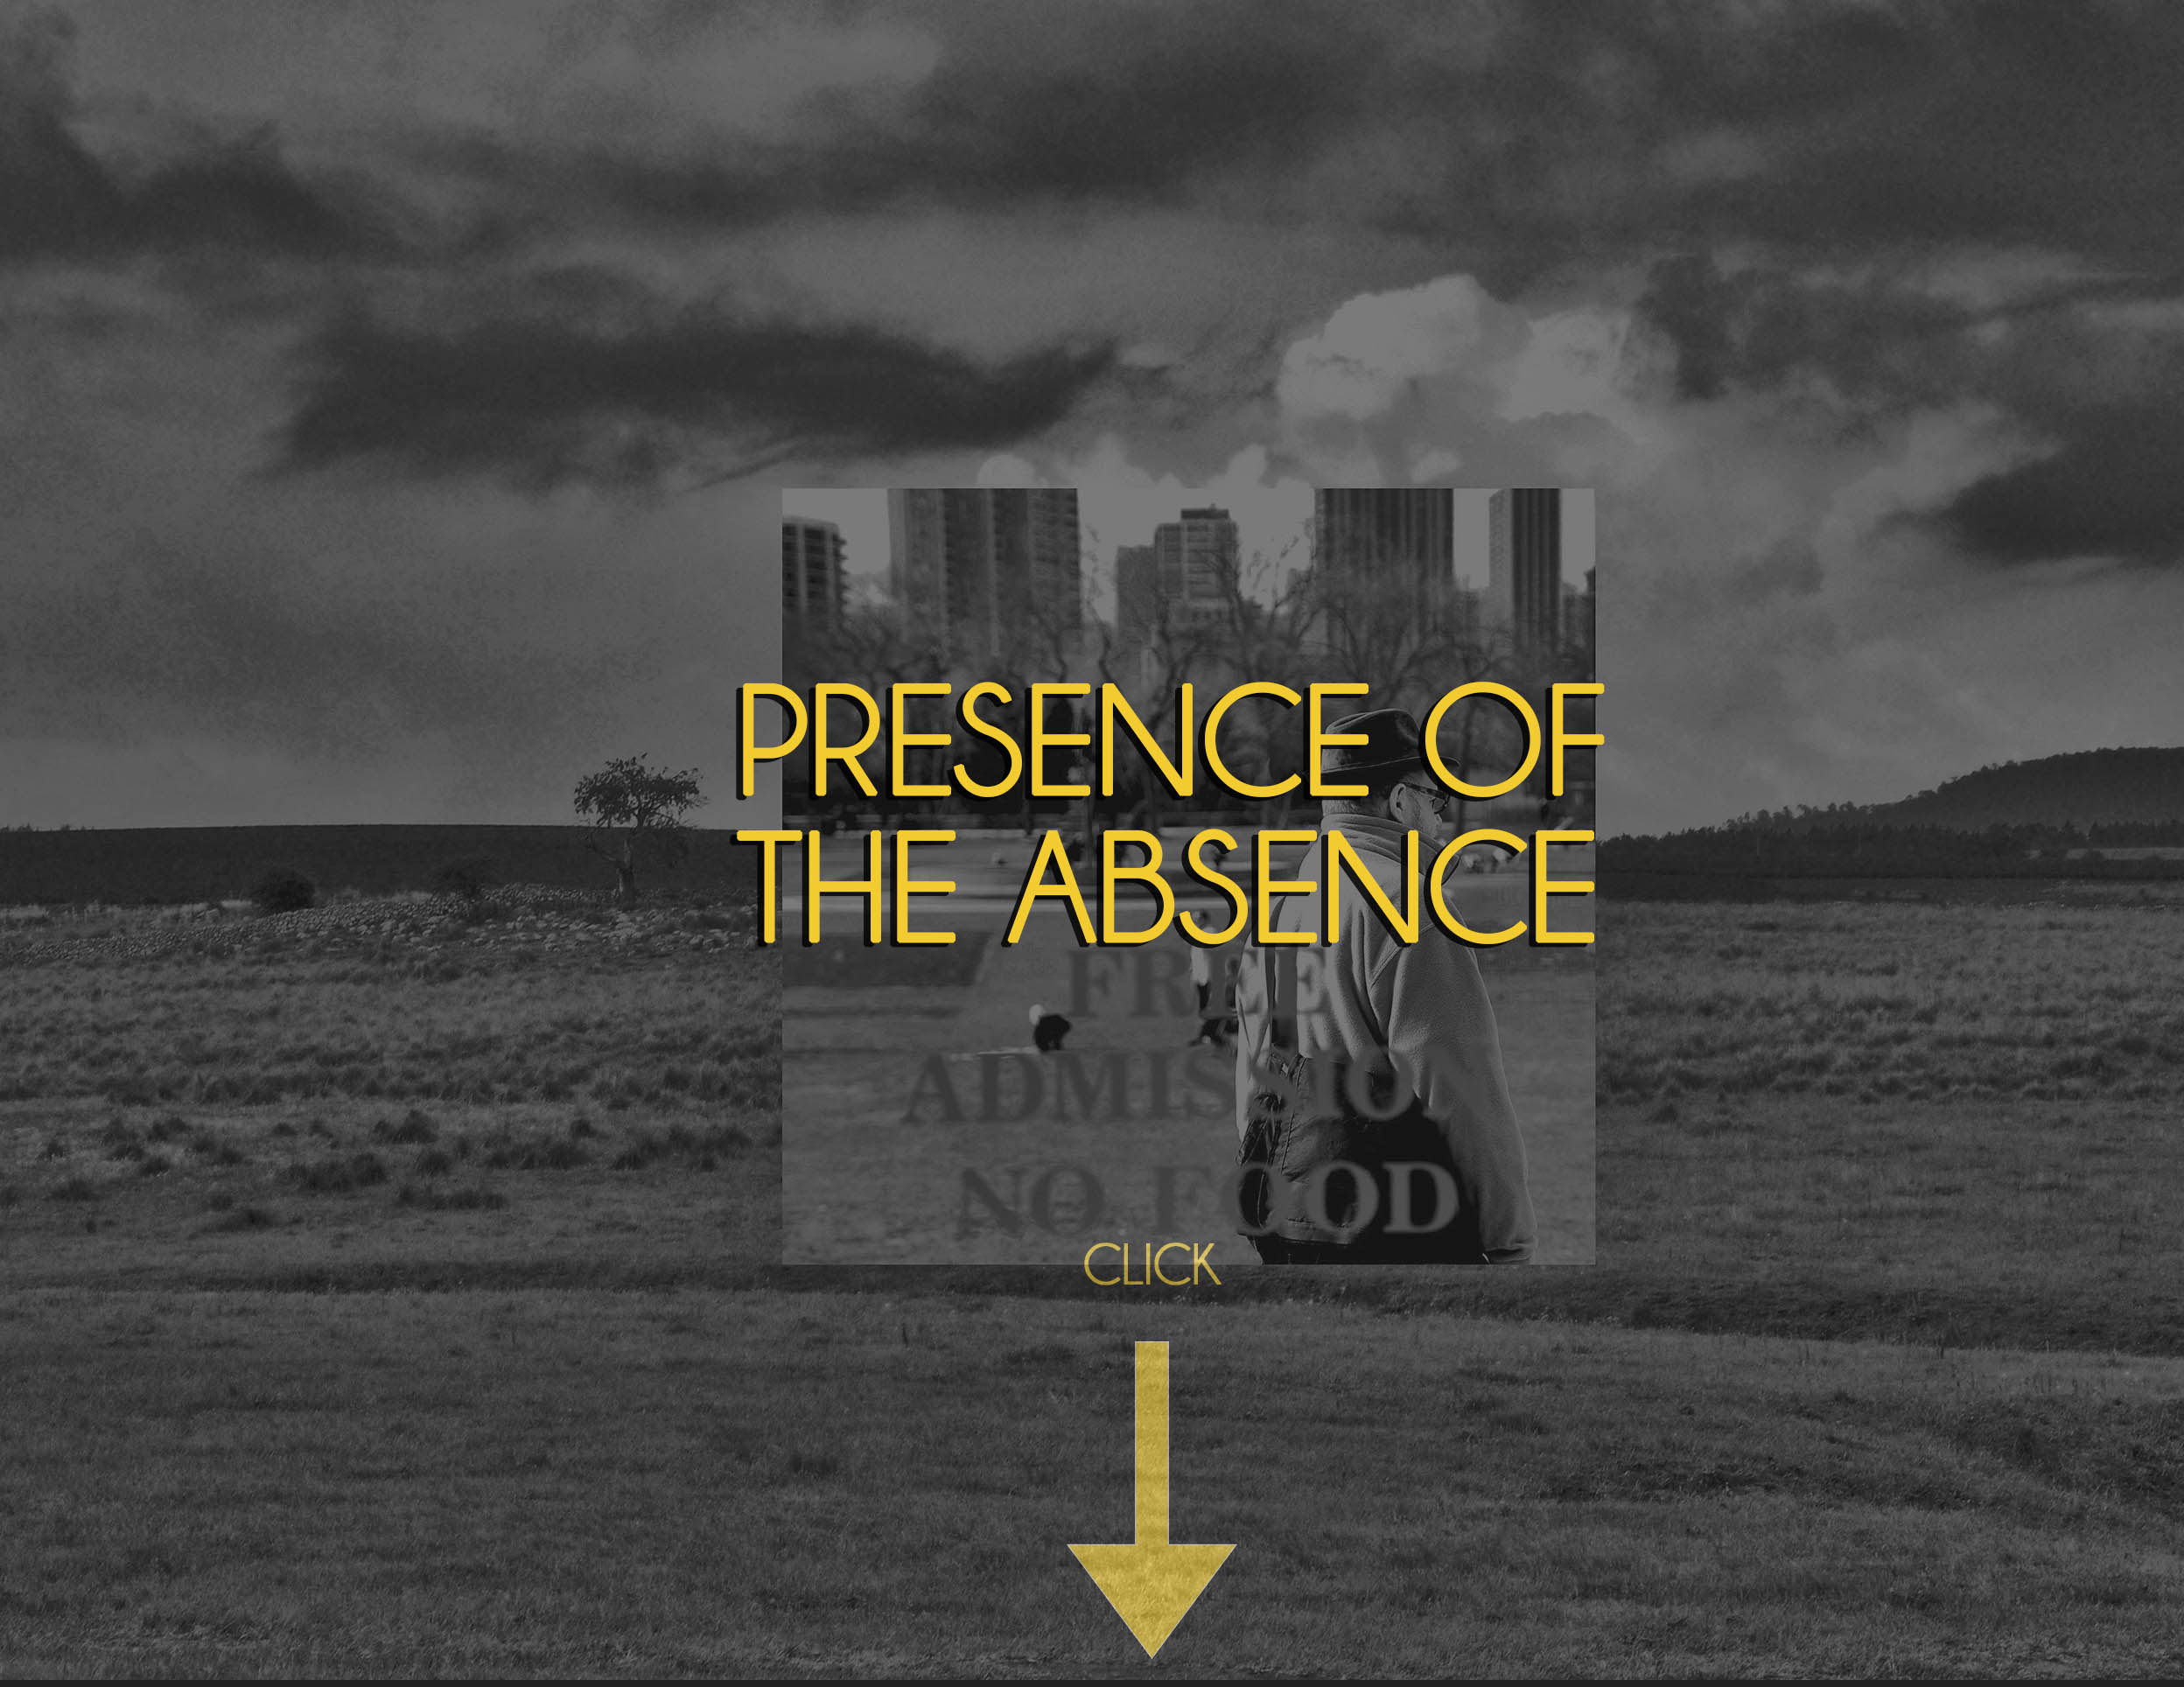 Presence of the Absence